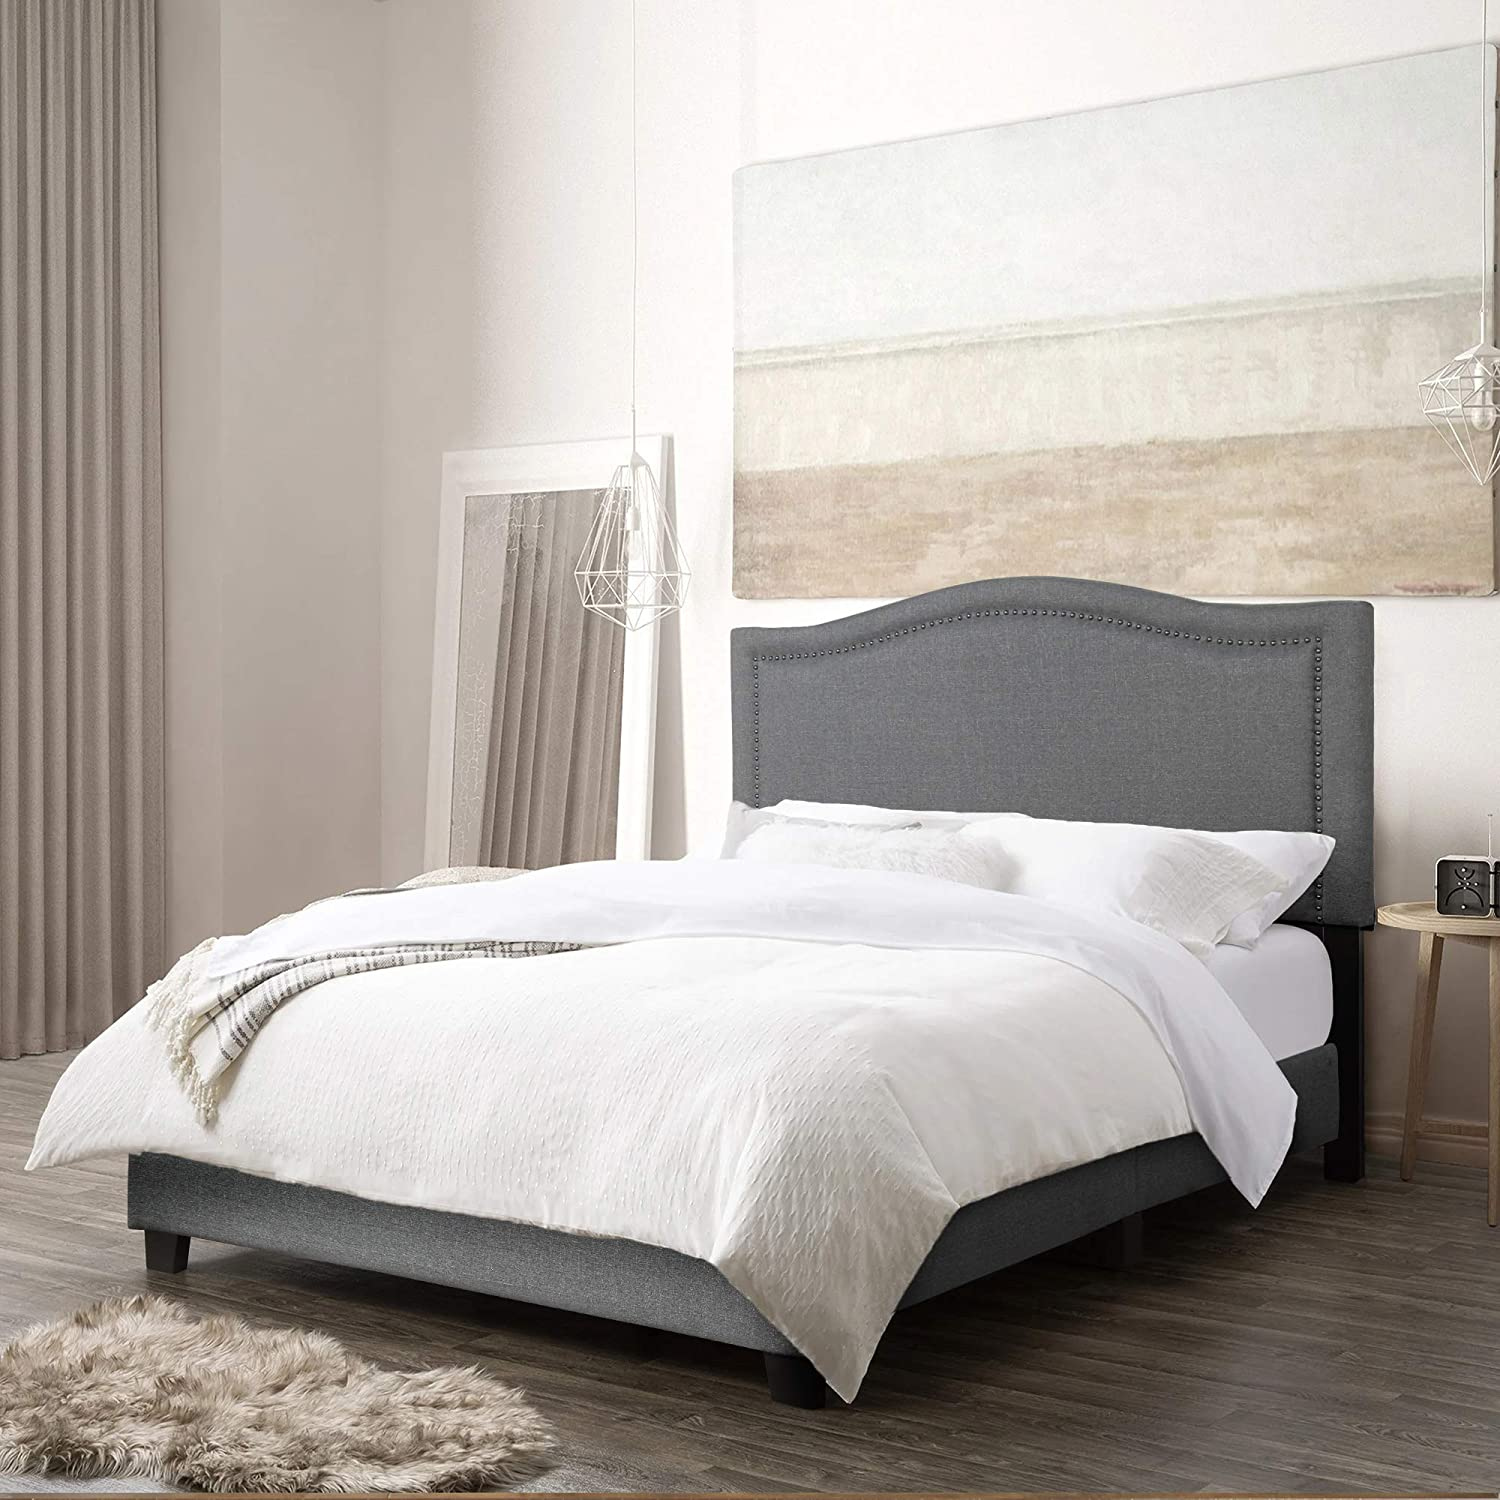 Mooseng Fully-Upholstered Platform Bed Contemporary Mattress Foundation with Headboard,Low-Profile, Full, Gray